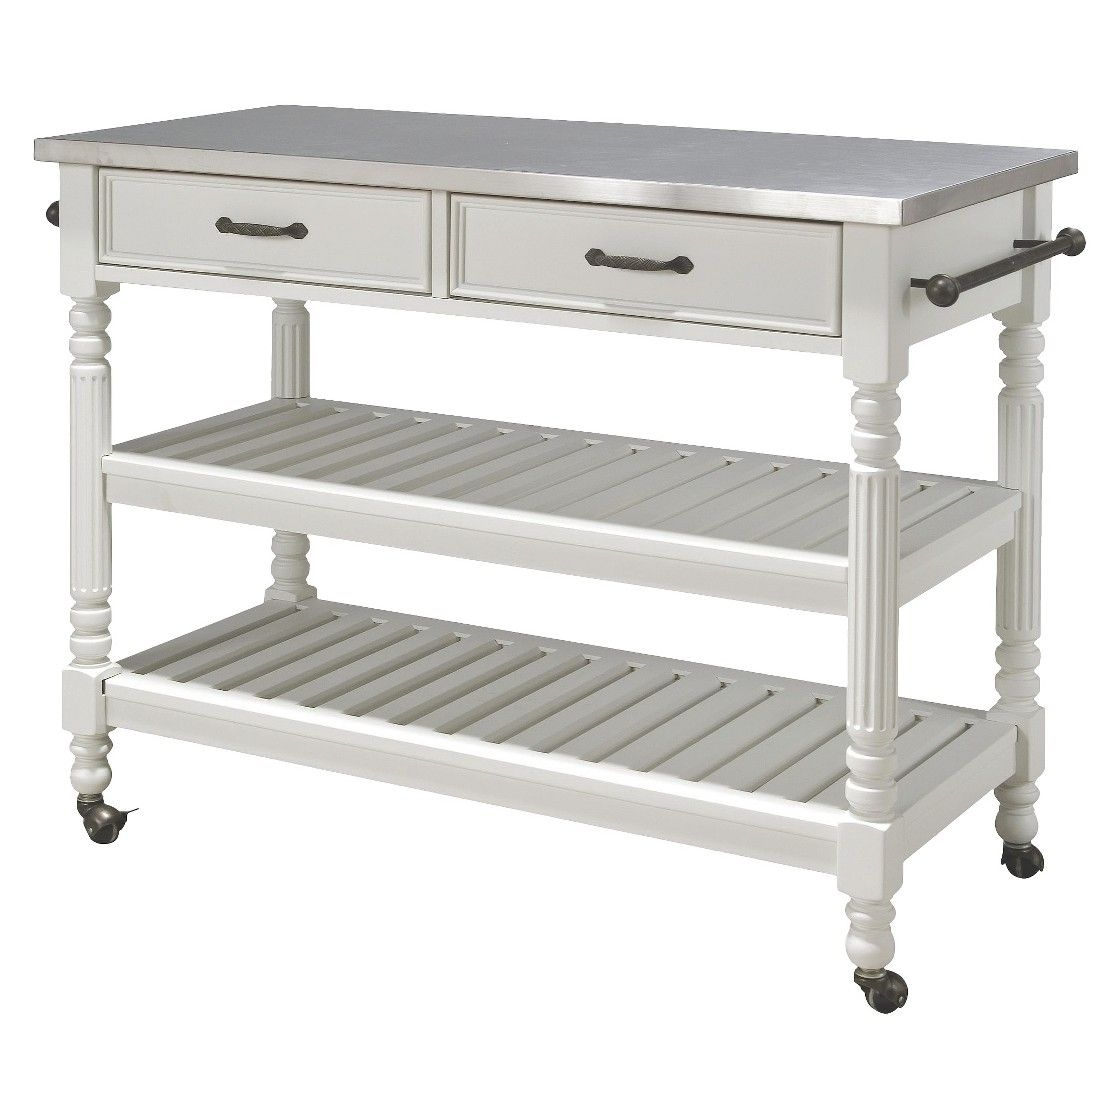 Kitchen Island With Stainless Steel Top Ideas On Foter